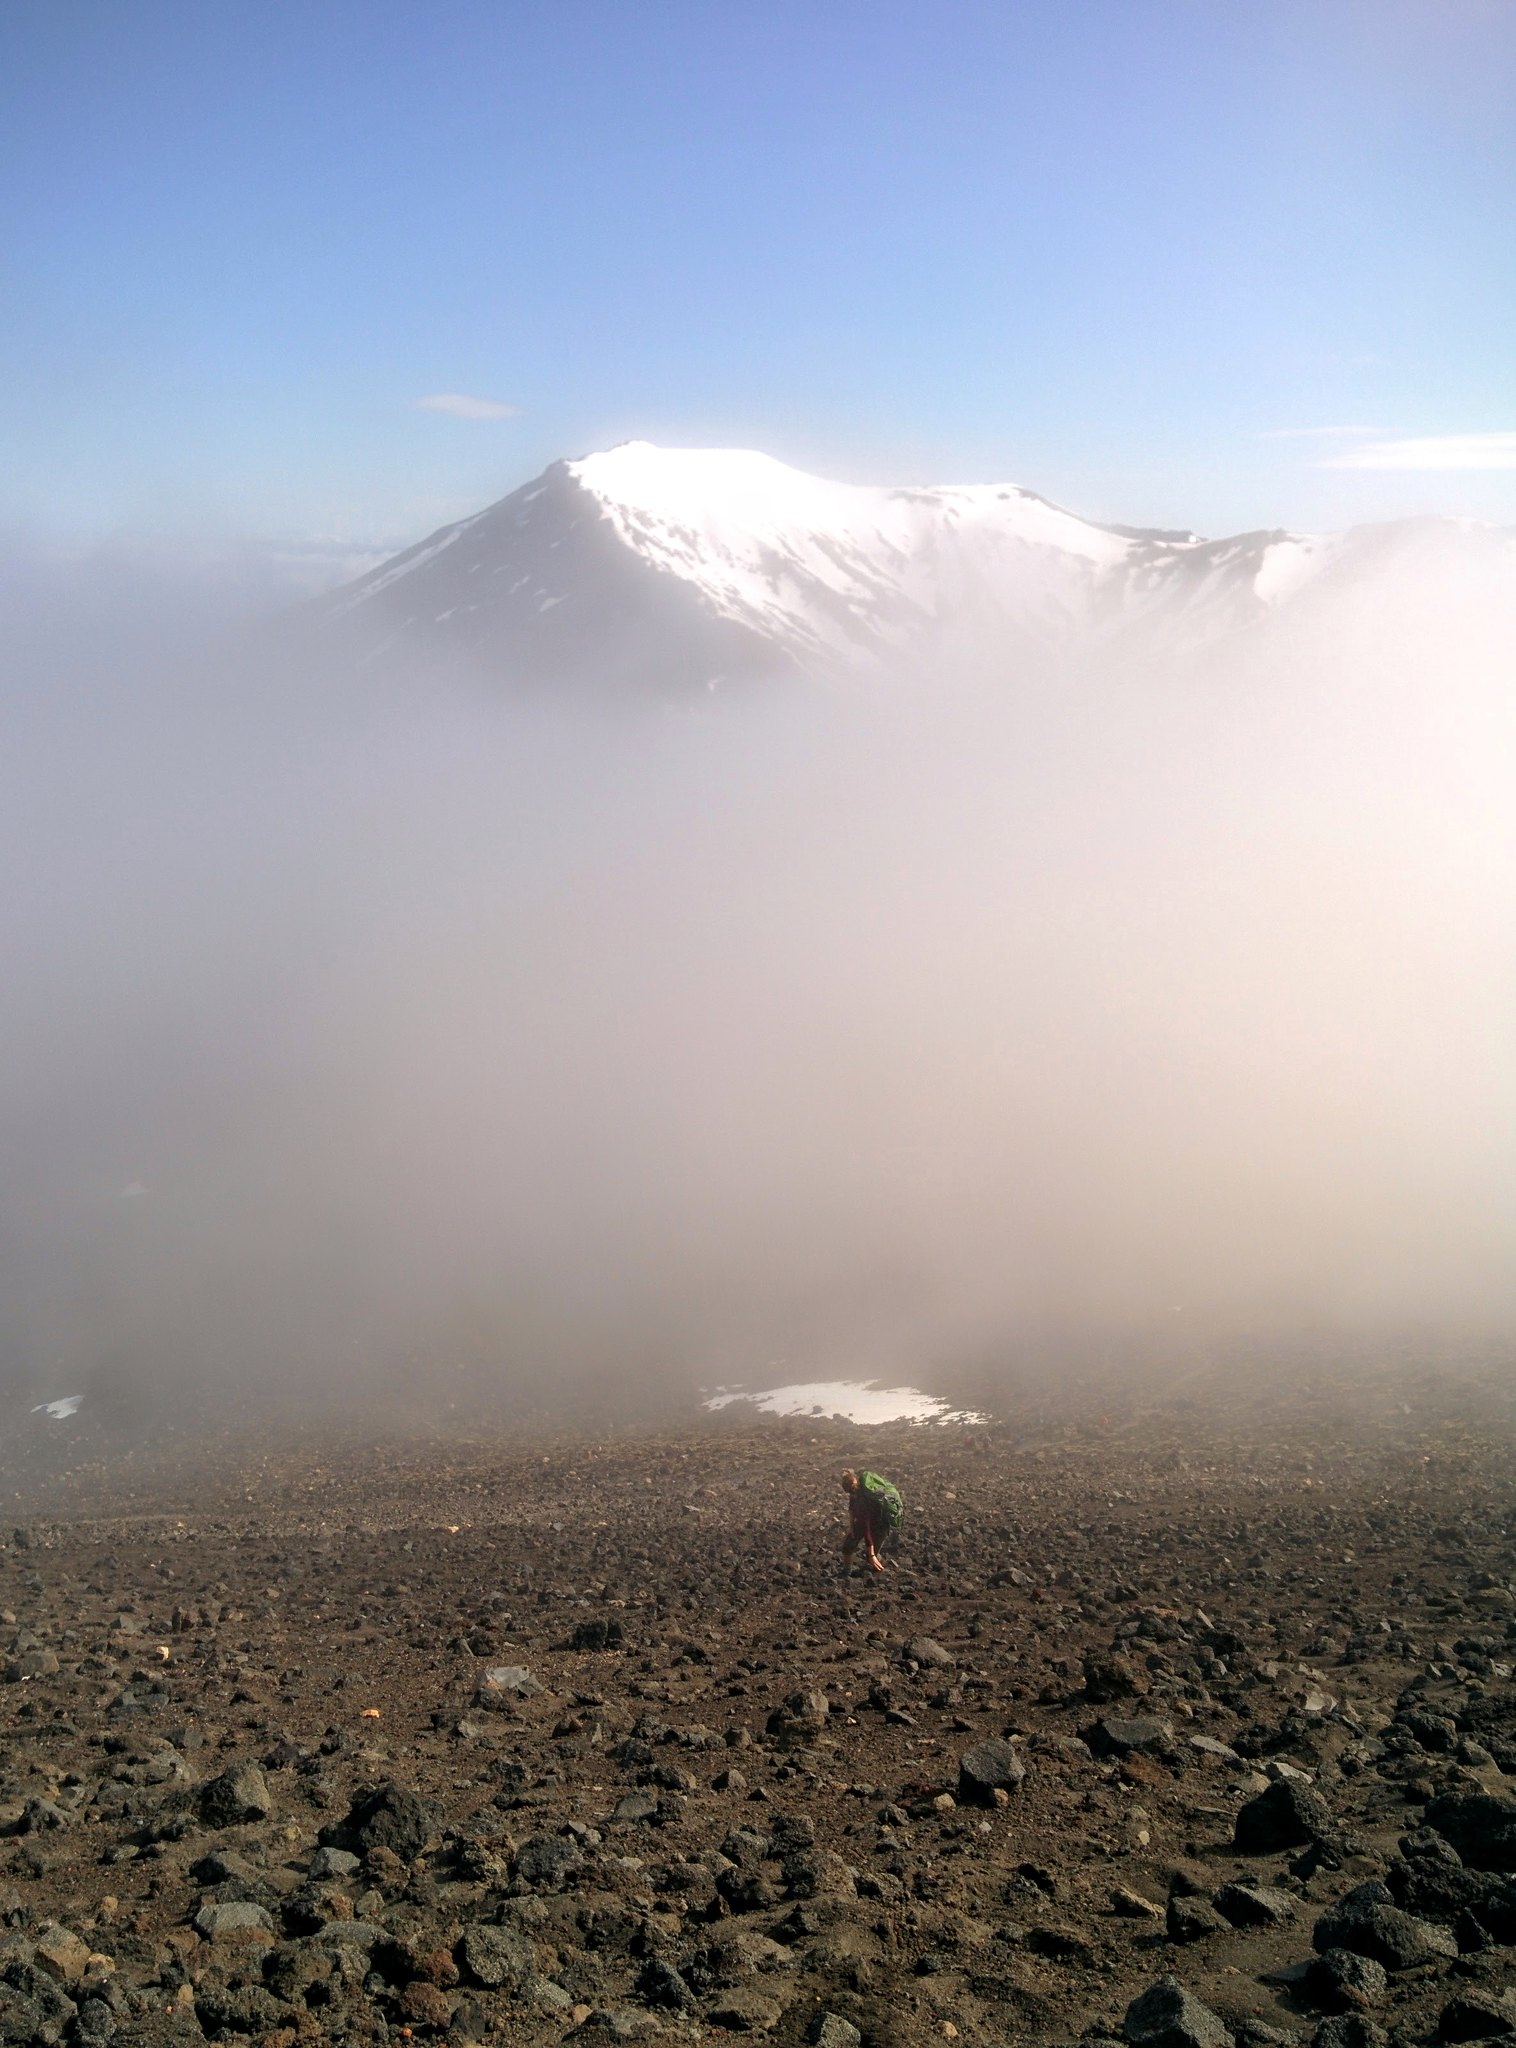 The mist clears on the slopes of Mount Ngauruhoe